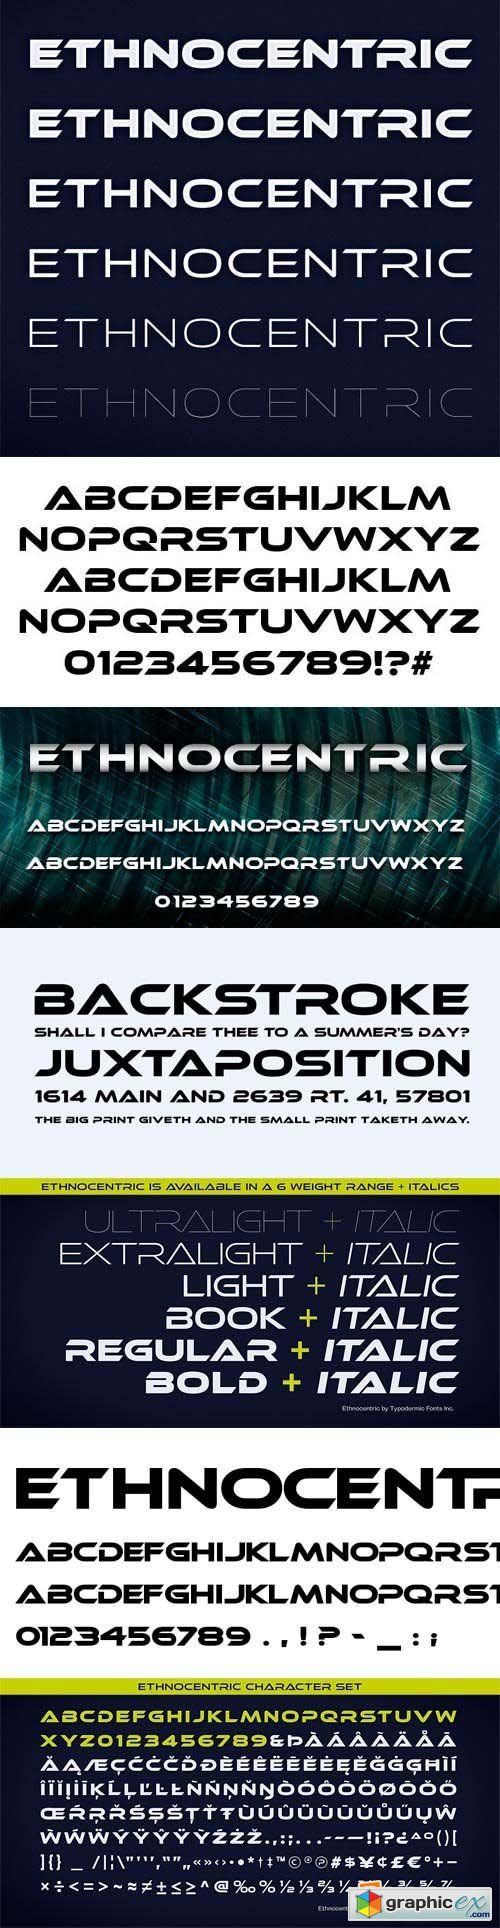 Ethnocentric Font Family - 12 Fonts for $240